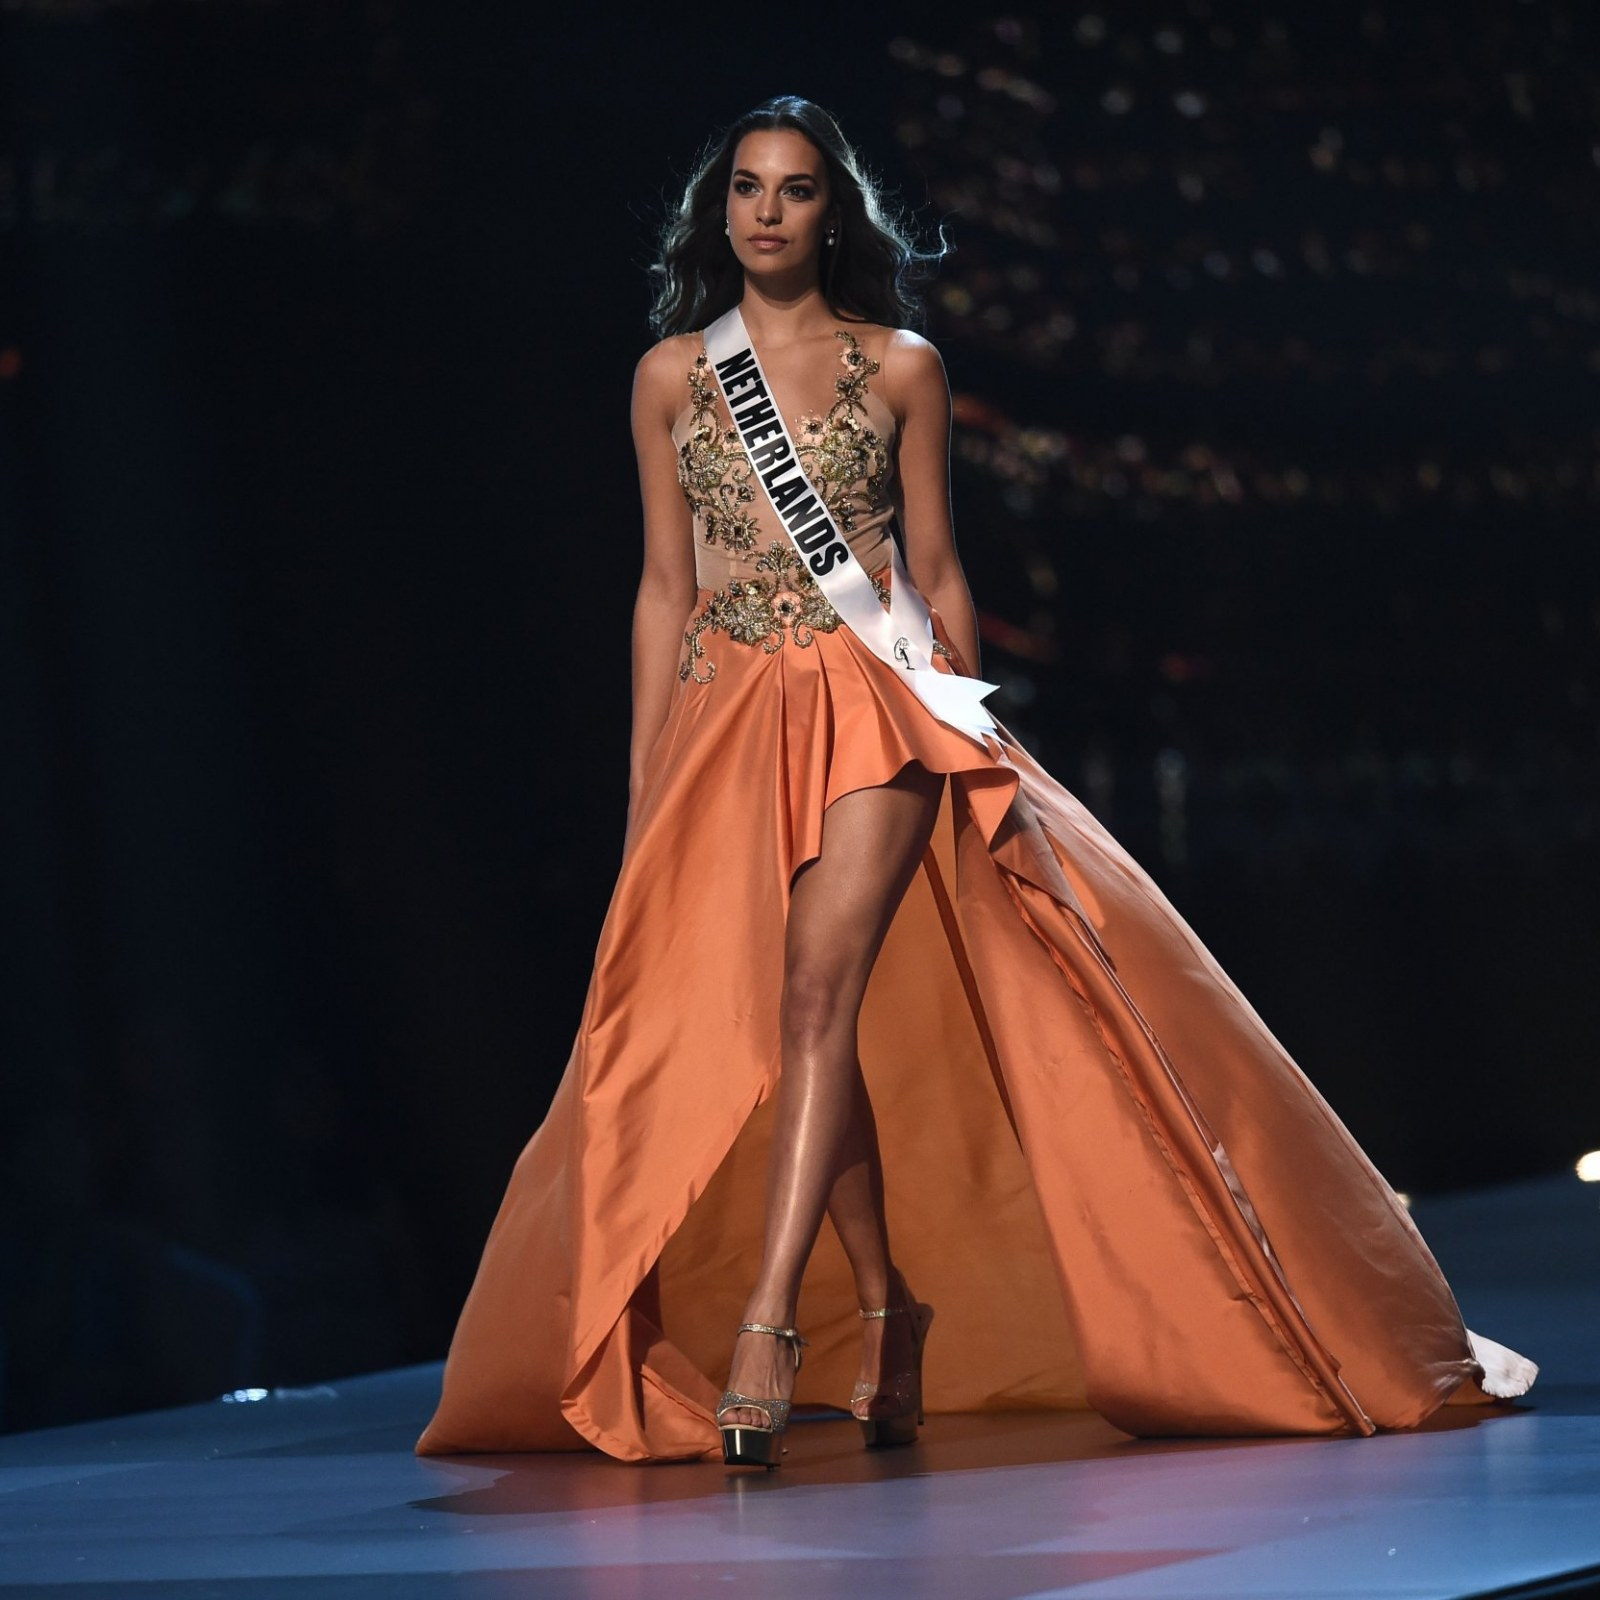 watch miss universe 2018 live online free